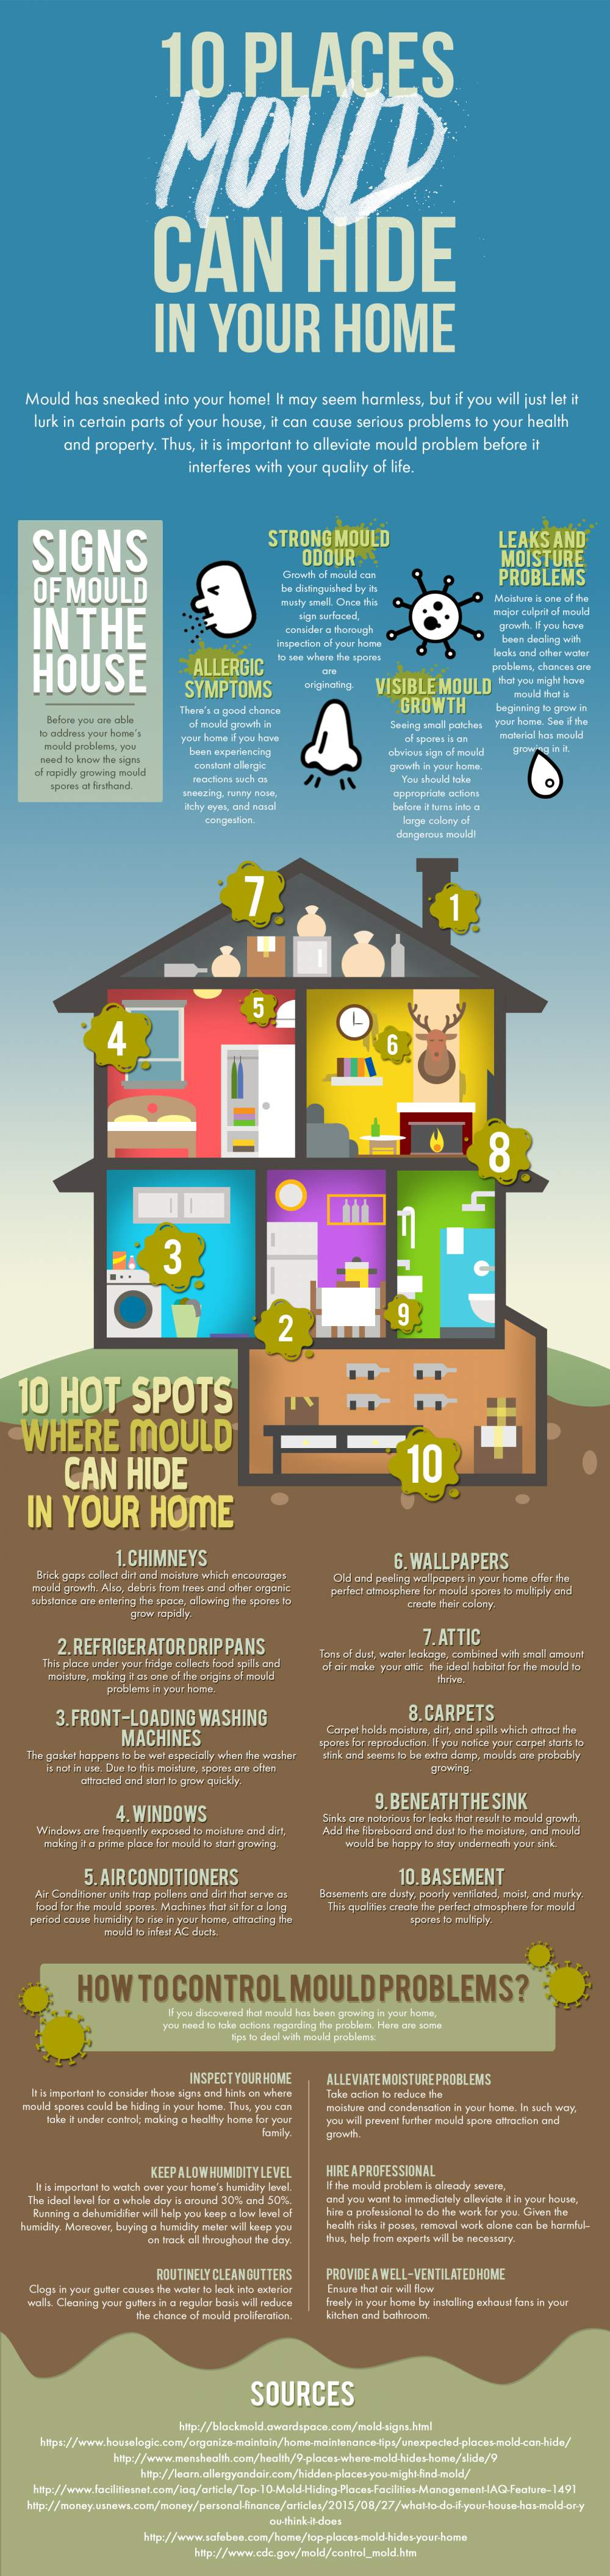 mould-in-your-home